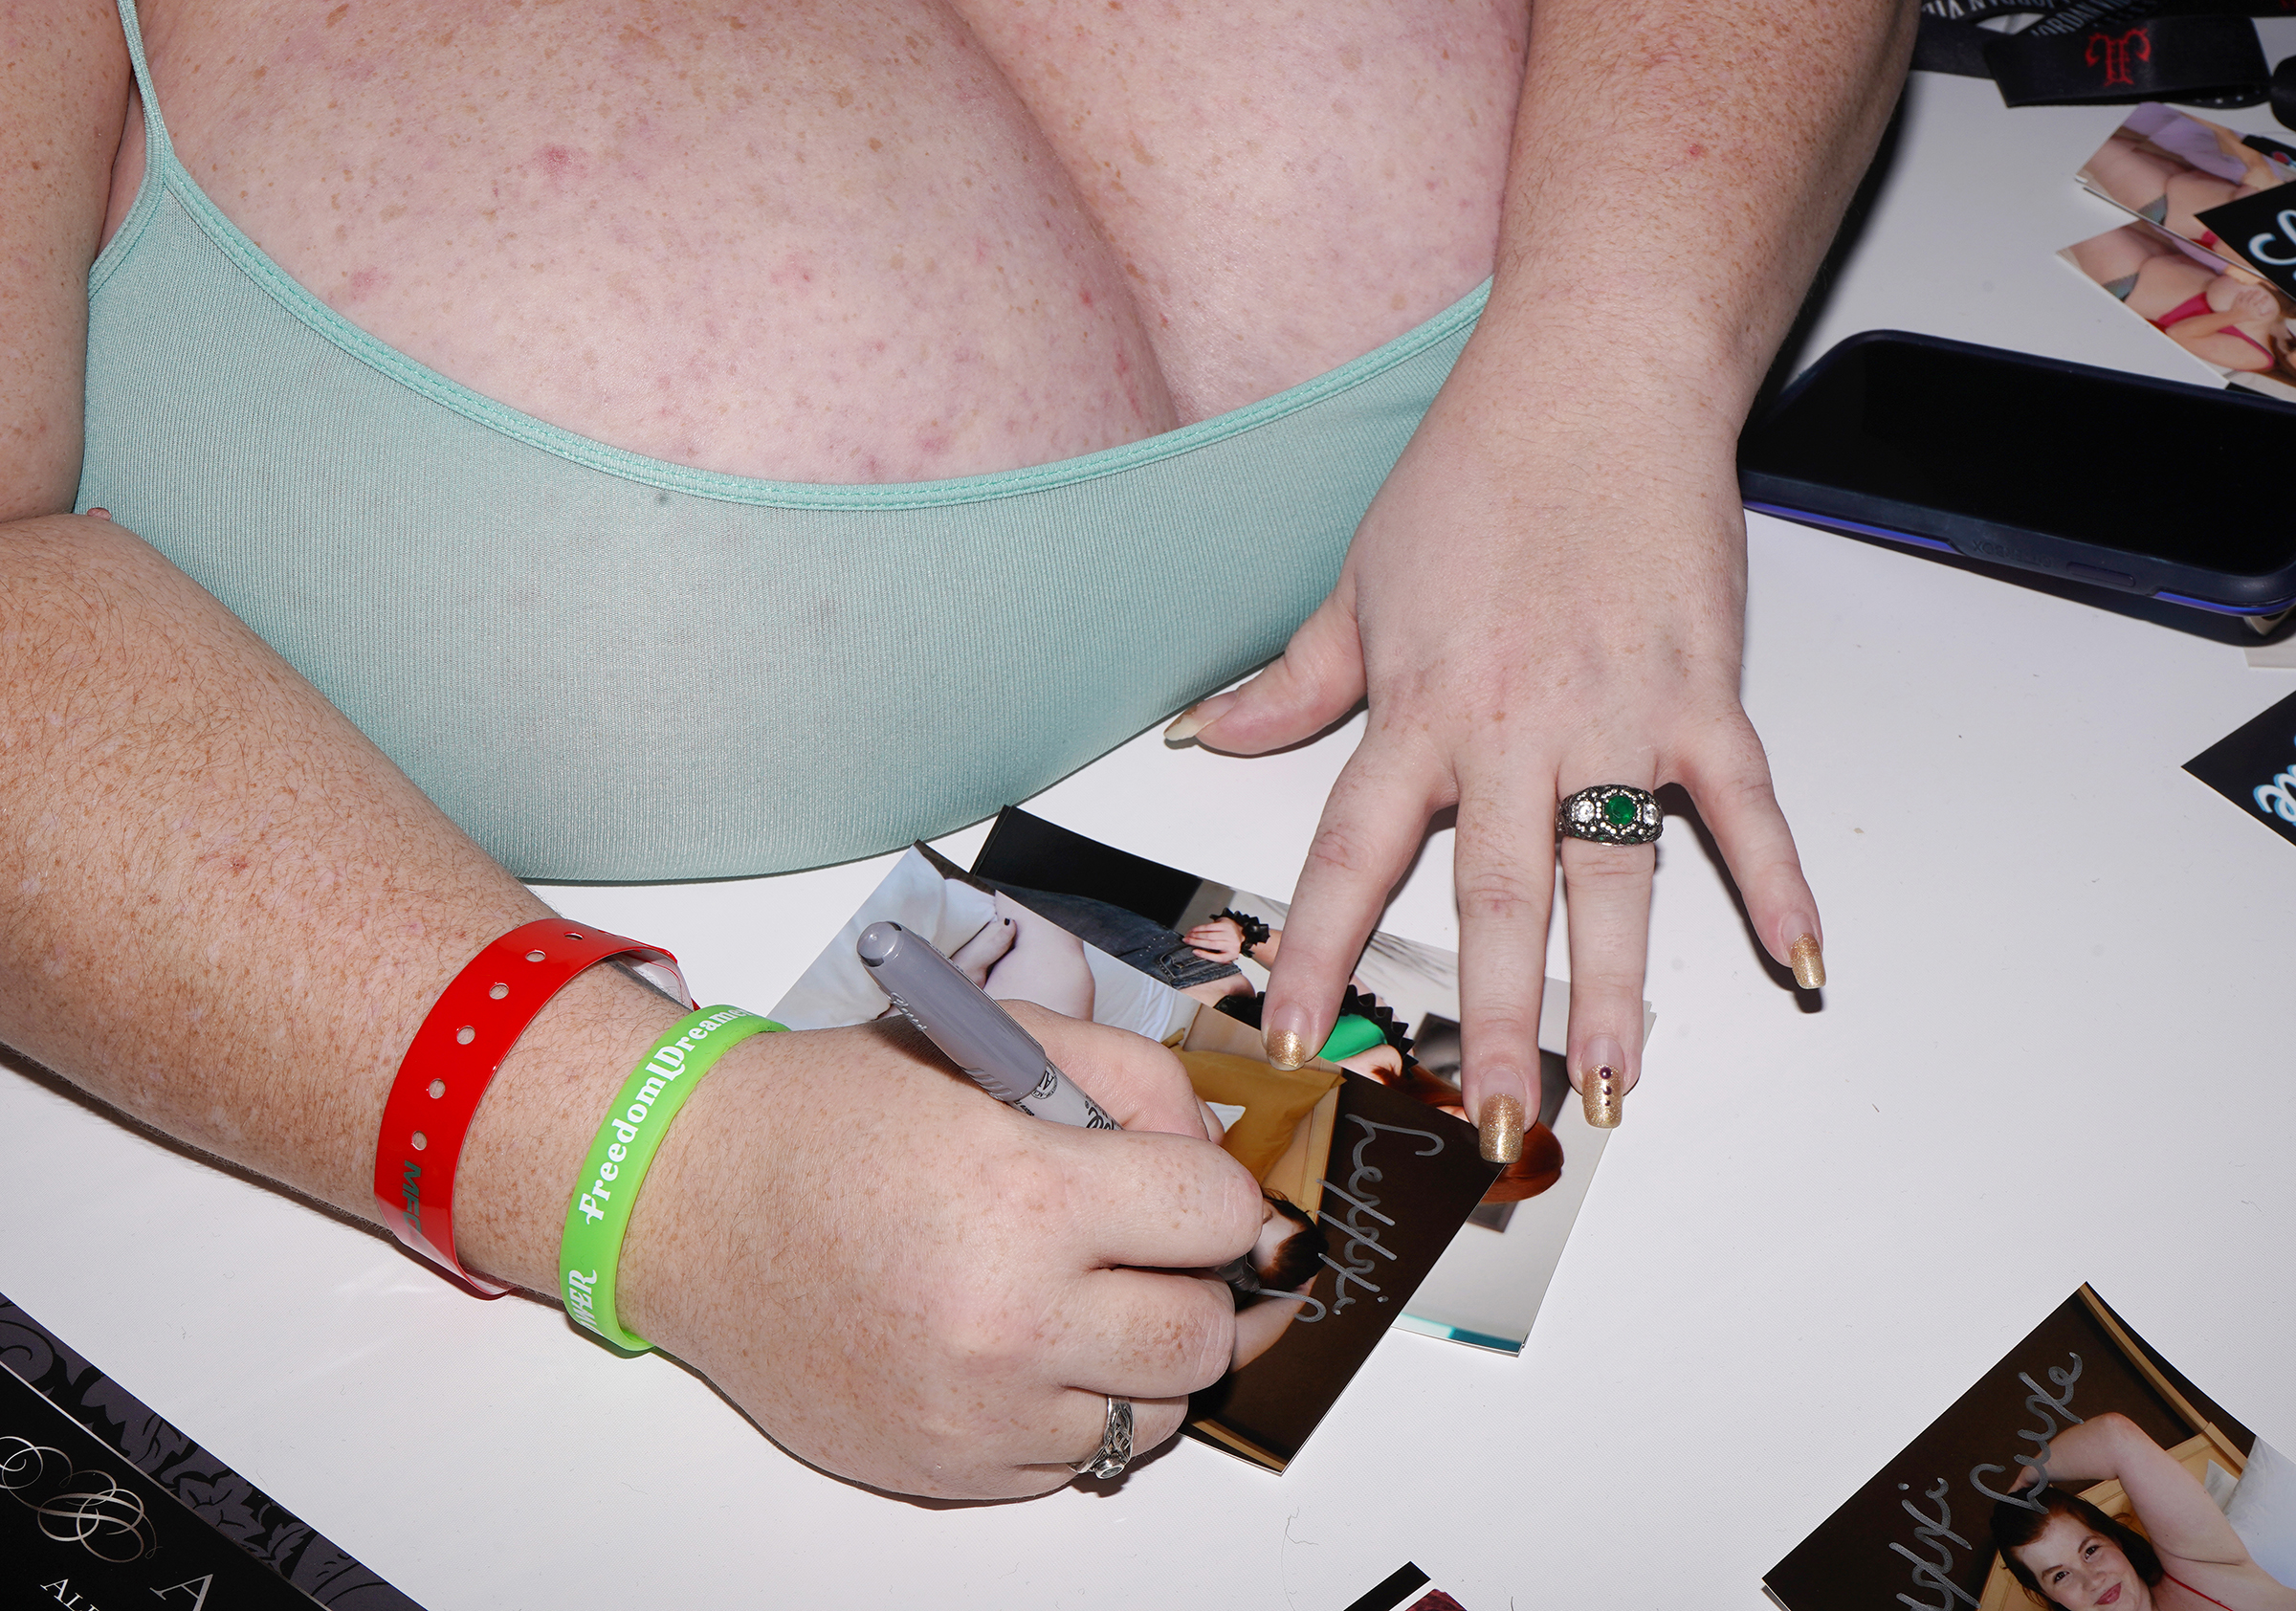 The hands of a BBW porn performer as she signs a photo of herself